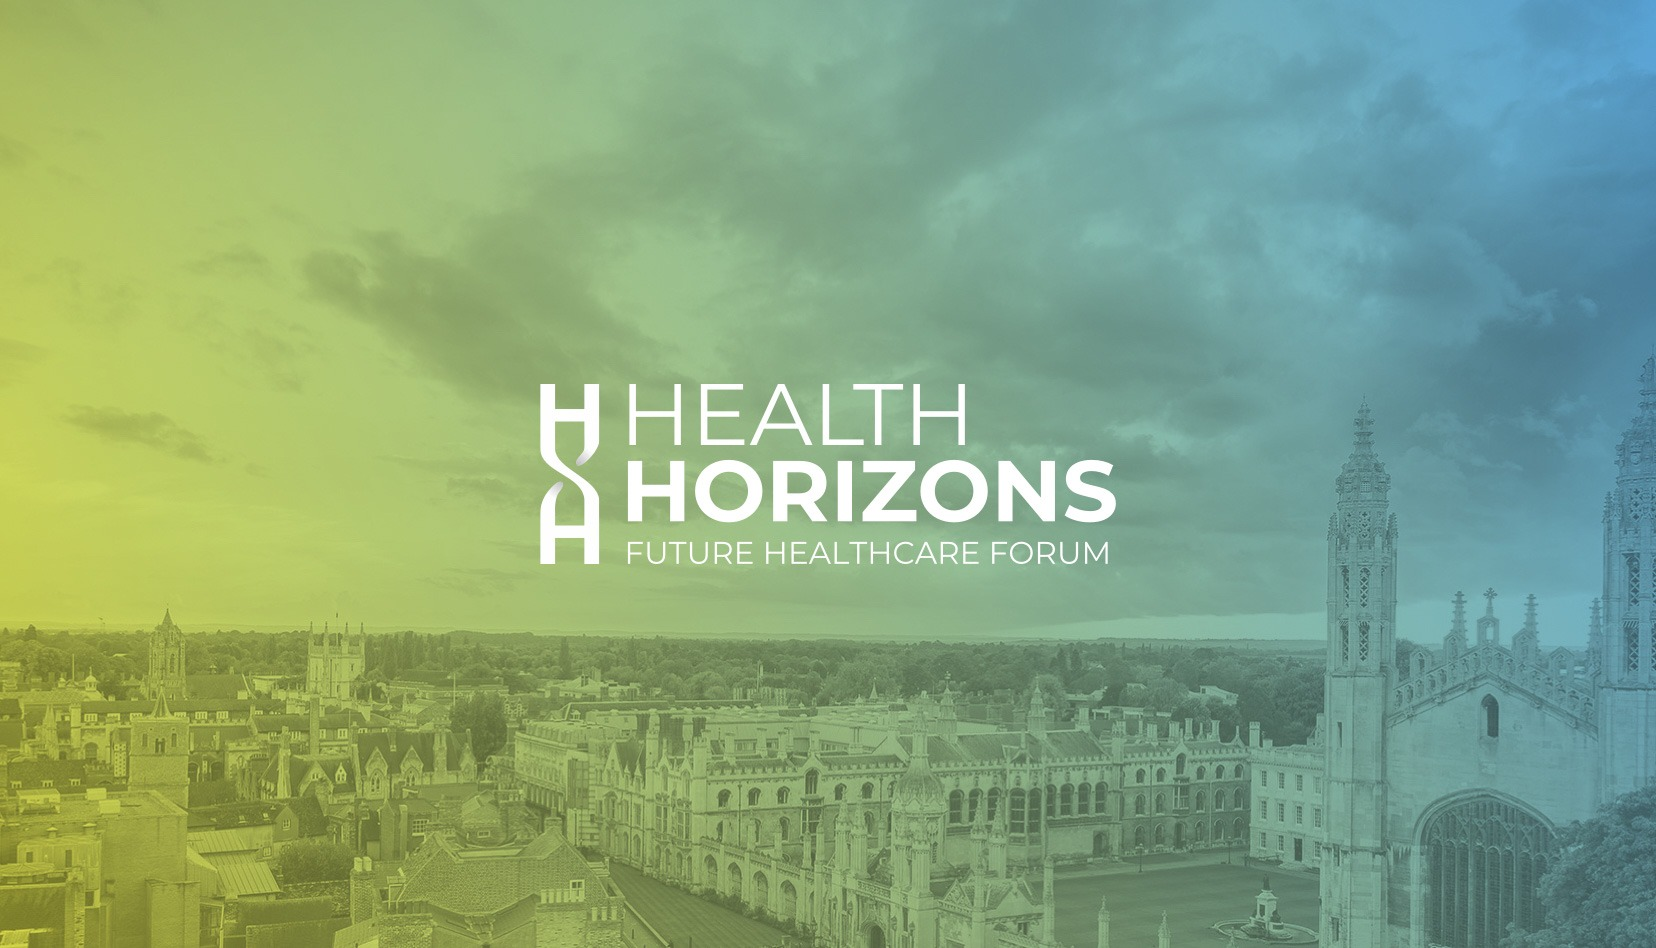 Health Horizons Project